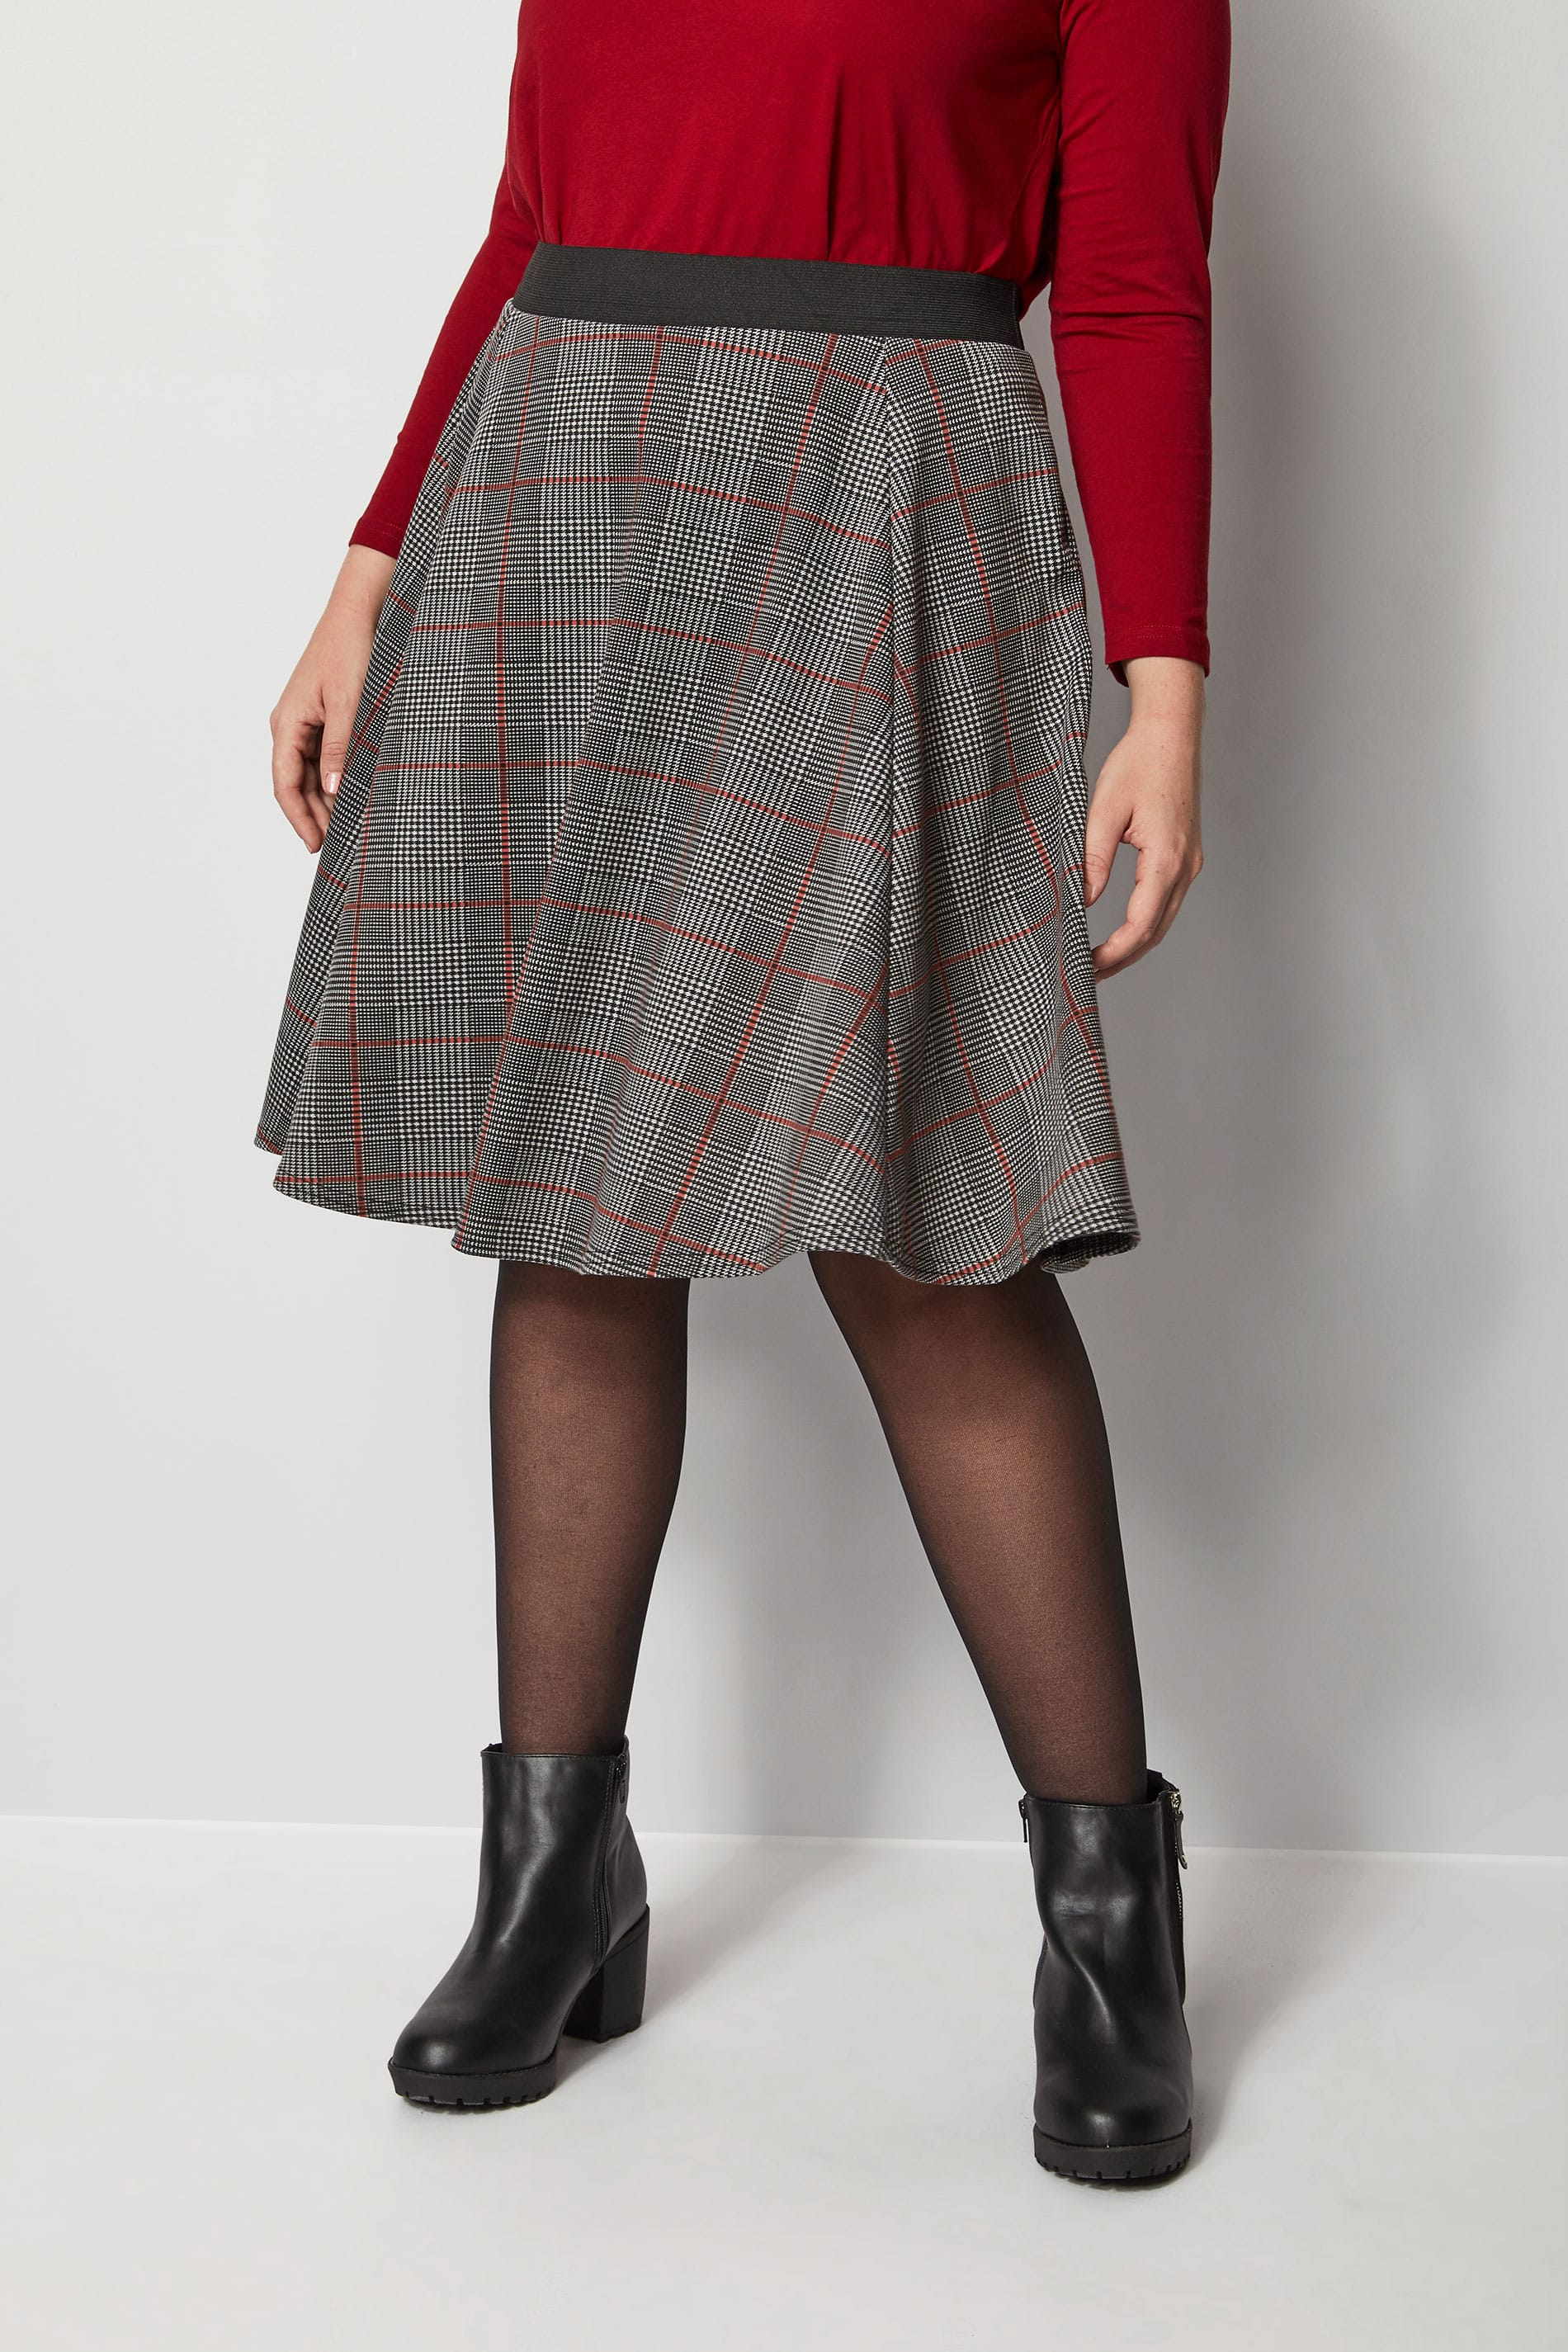 928d2889 Black & Red Check Skater Skirt